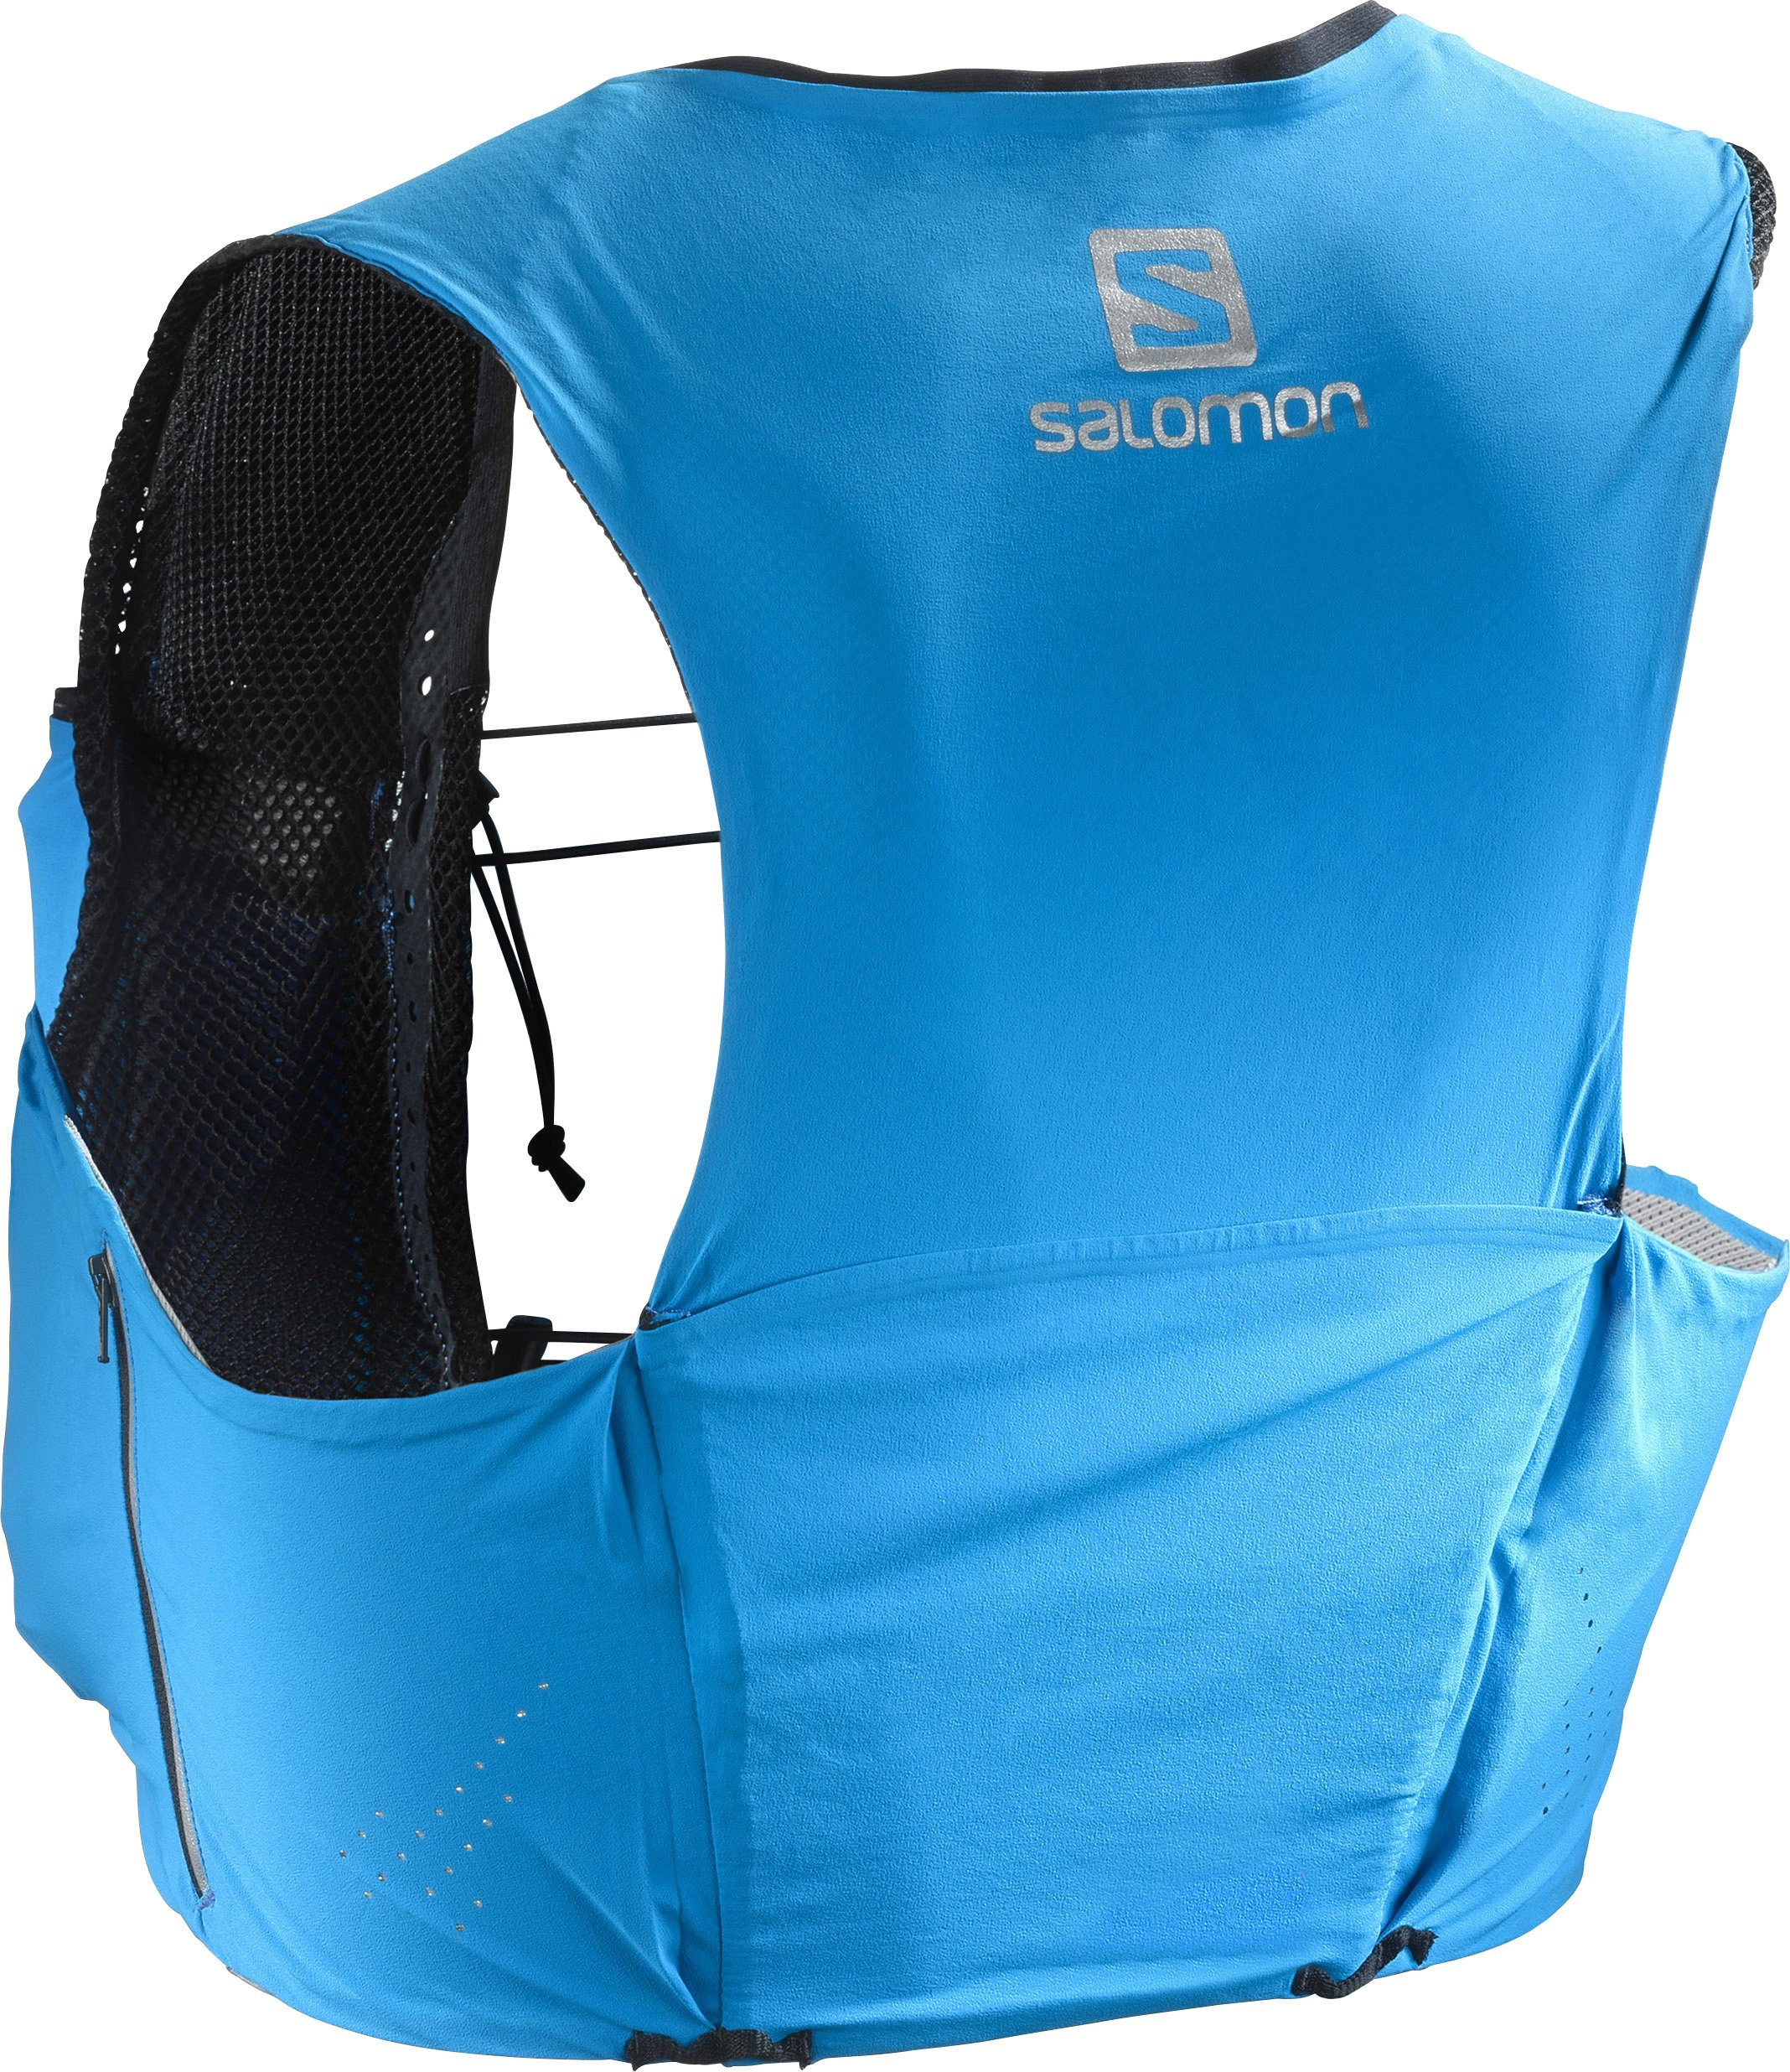 Salomon Unisex S-Lab Sense Ultra 5 Set Backpack, Transcend Blue, Black, S